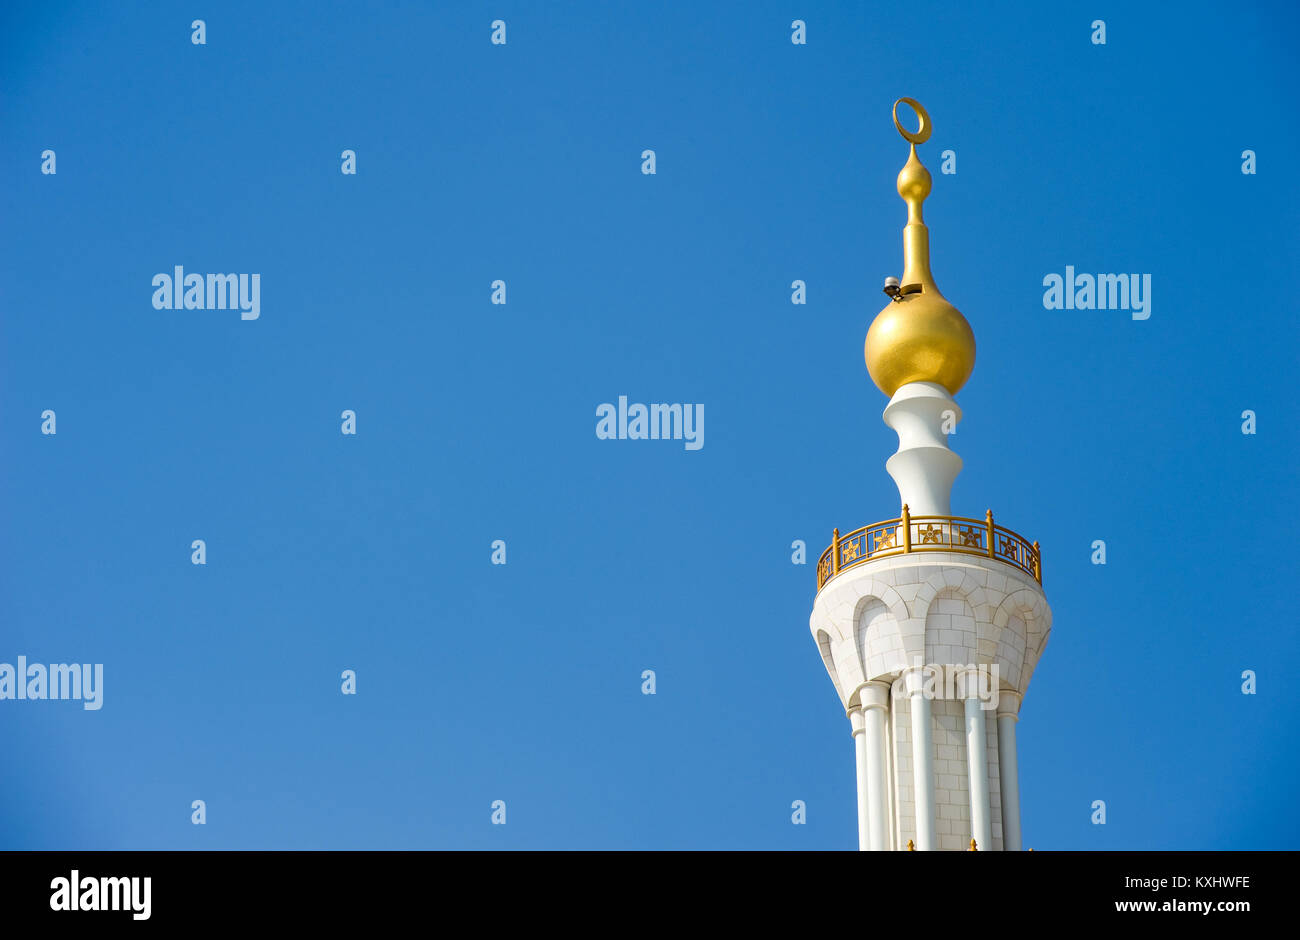 ABU DHABI, UNITED ARAB EMIRATES - DEC 28, 2017: Part of the roof from the Sheikh Zayed Mosque in Abu Dhabi. It is - Stock Image